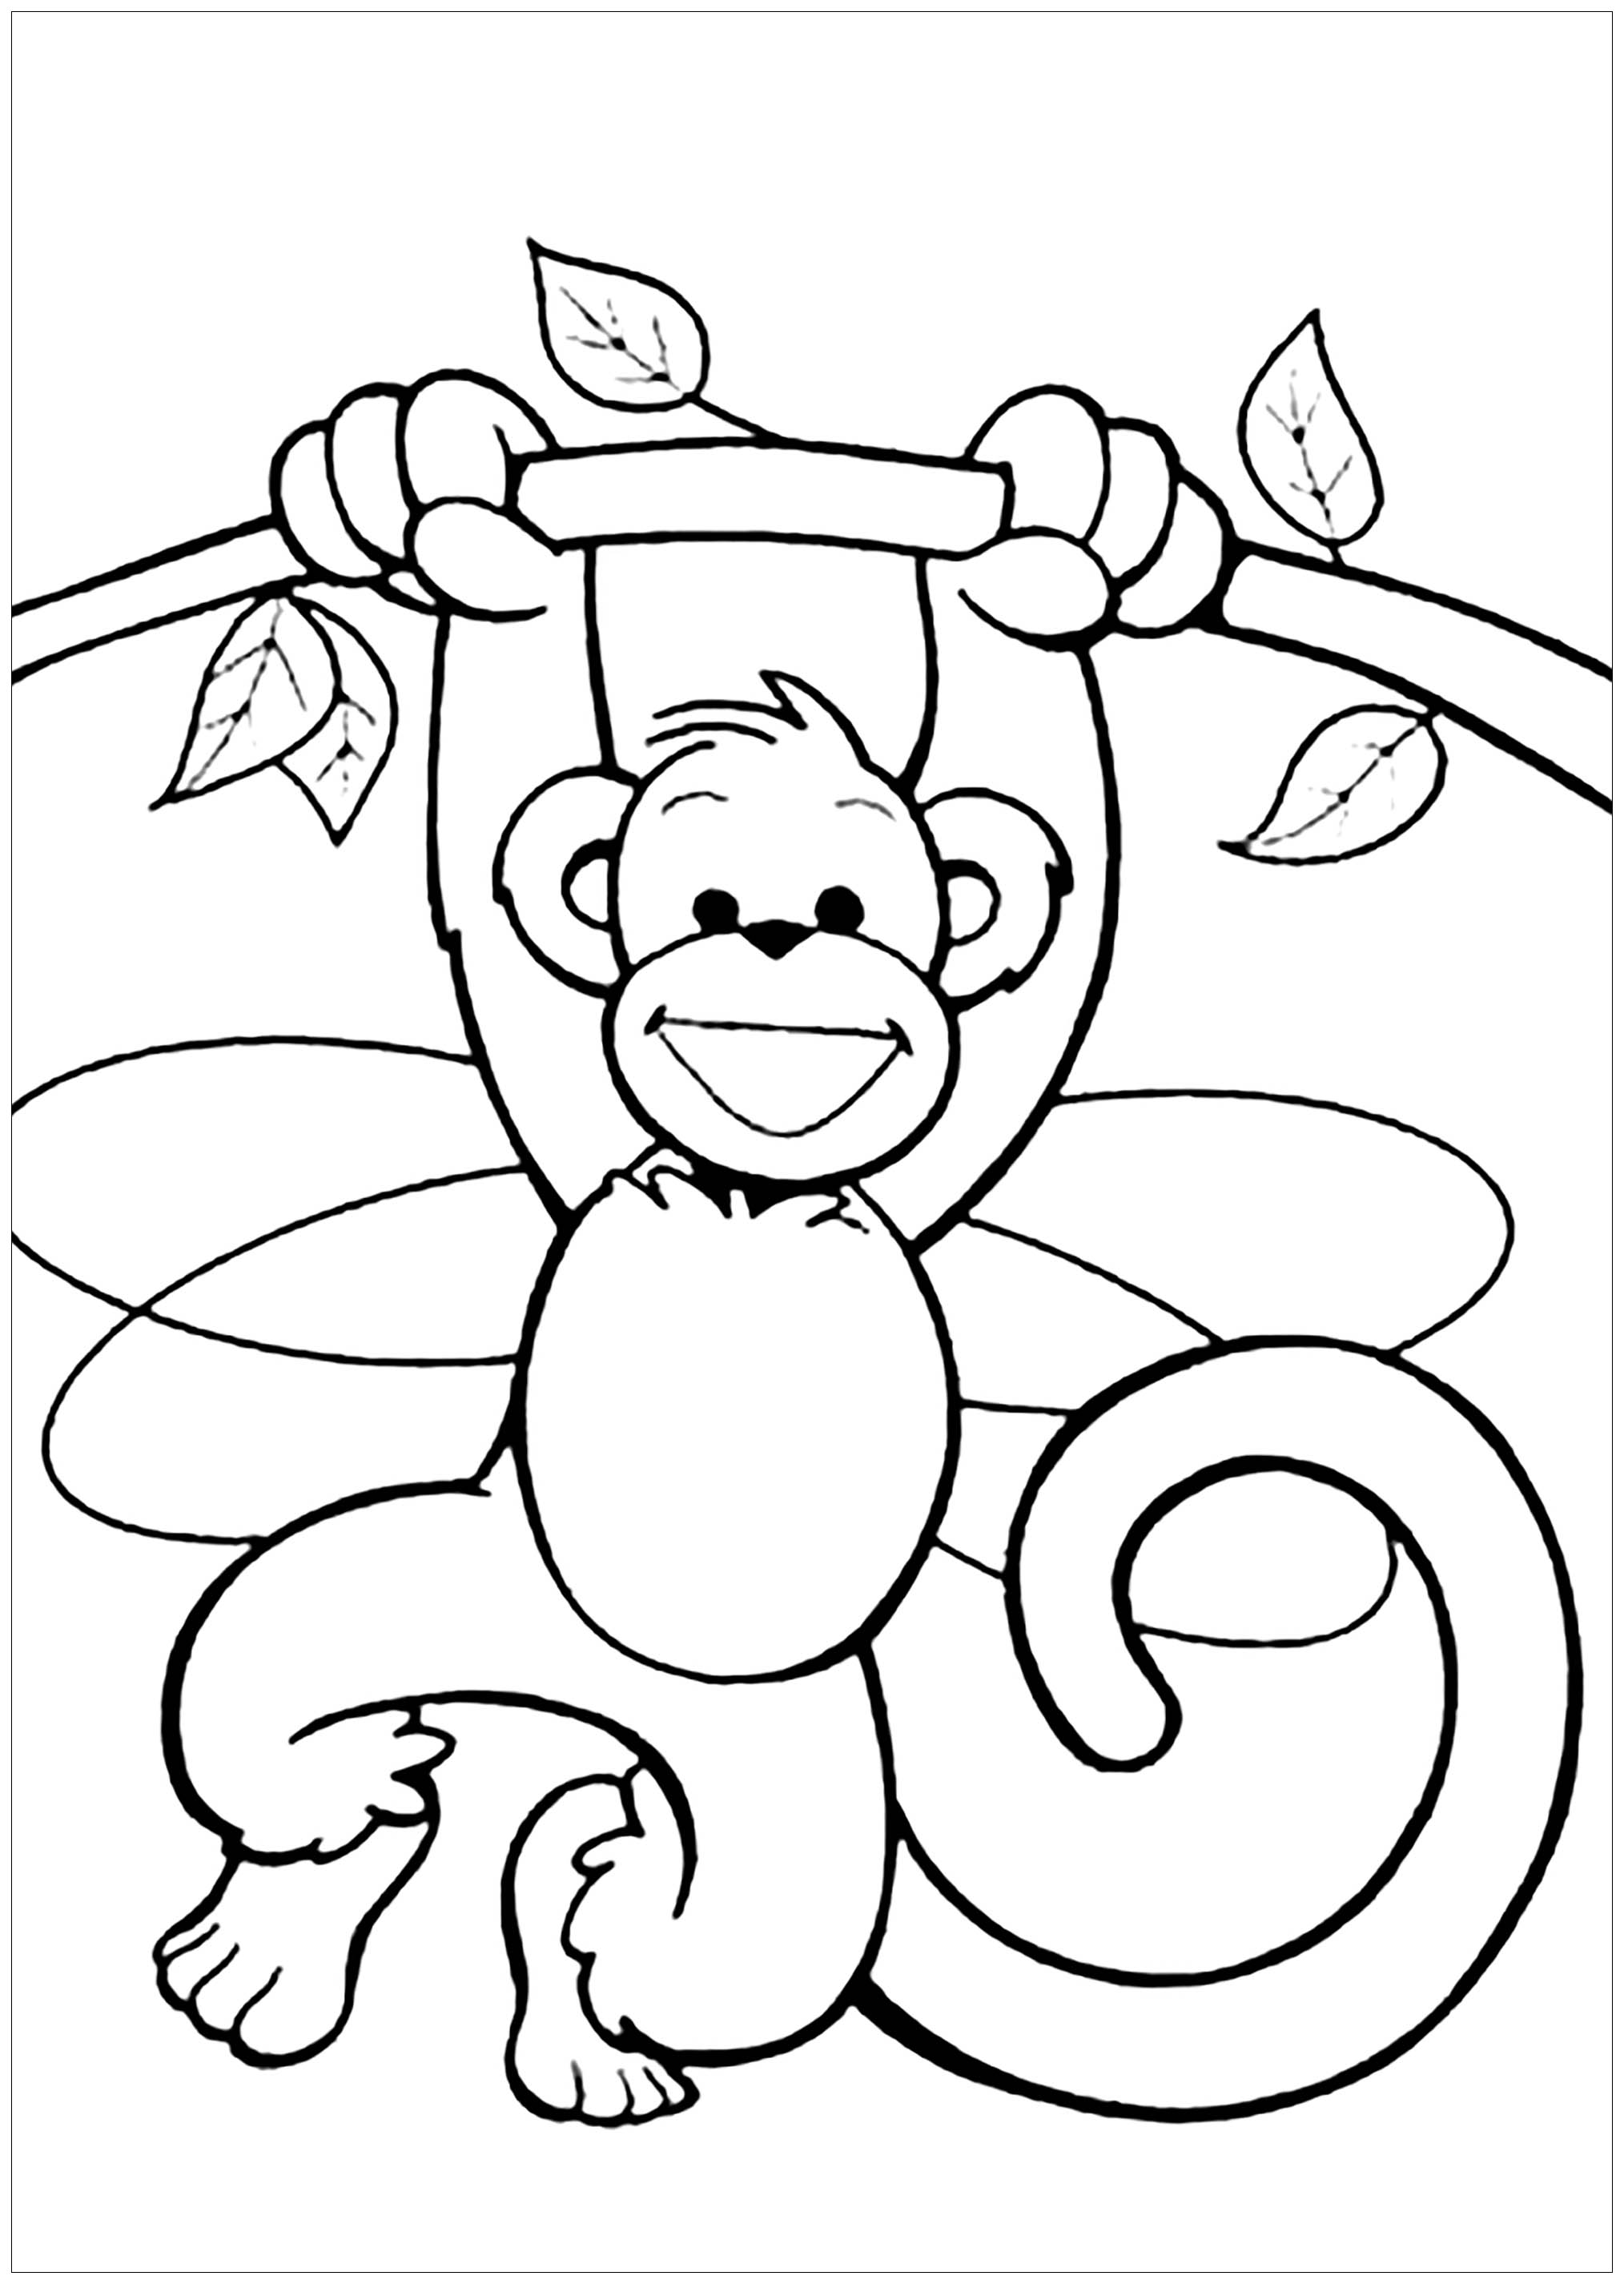 coloring pages of monkey cute monkeys coloring pages getcoloringpagescom coloring pages of monkey